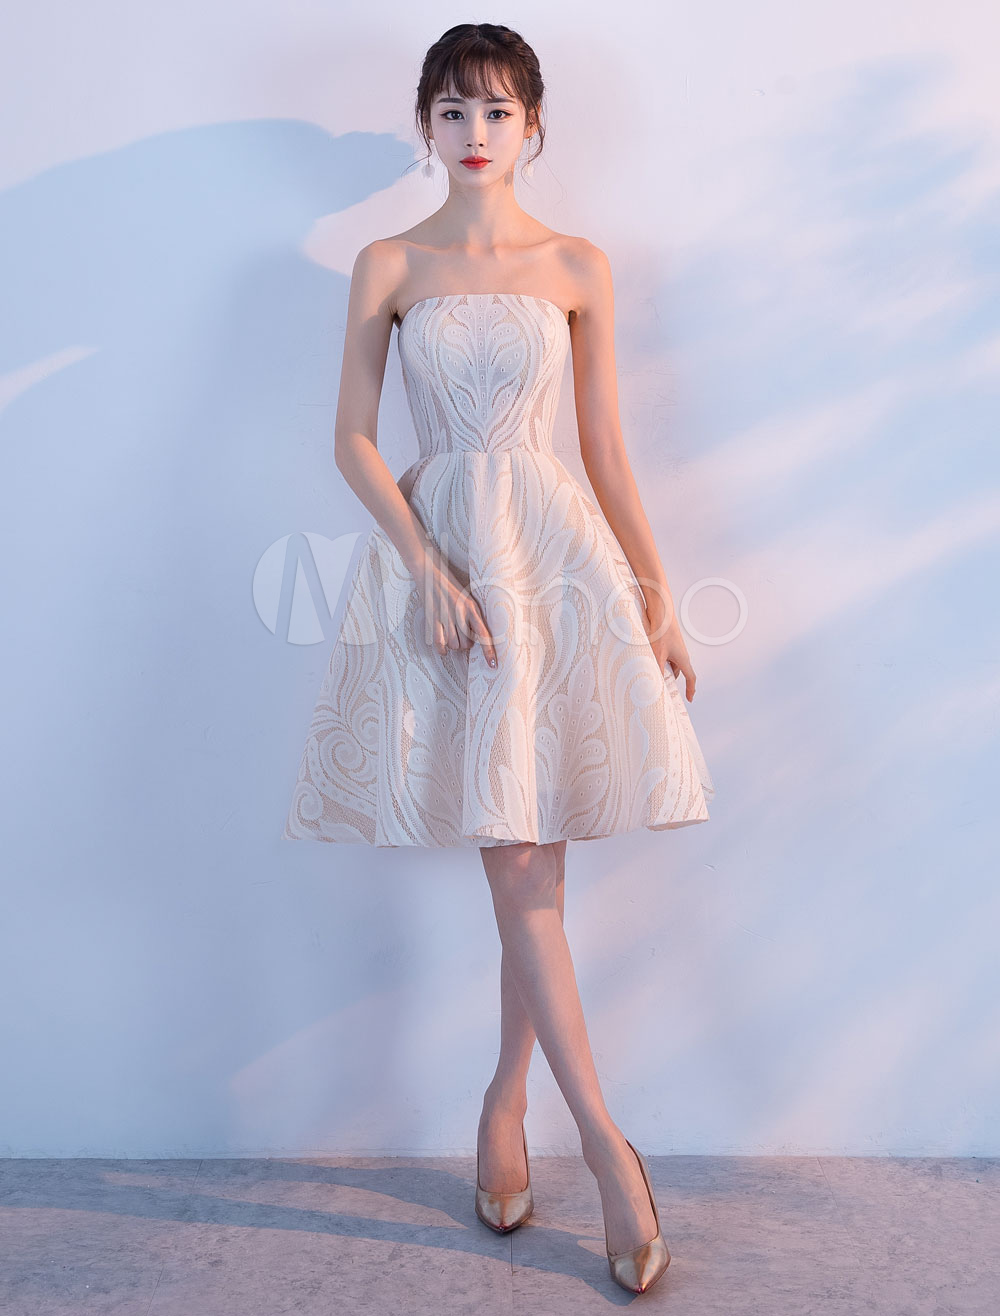 Ivory Homecoming Dresses Lace Short Prom Dress 2 Piece Cocktail Dress (Wedding) photo